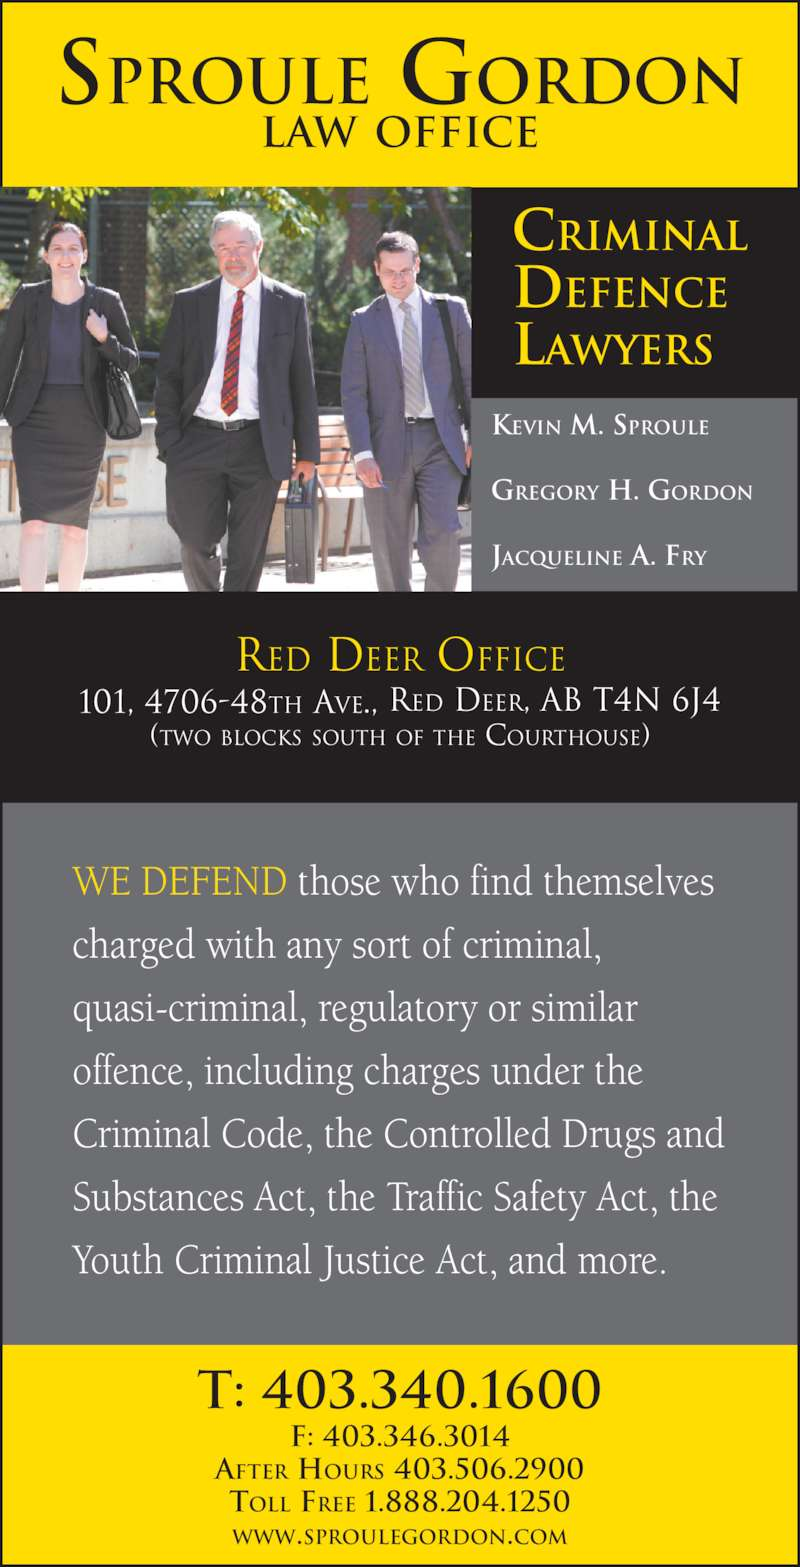 Sproule Gordon (403-340-1600) - Display Ad - RED DEER OFFICE 101, 4706-48TH AVE., RED DEER, AB T4N 6J4 (TWO BLOCKS SOUTH OF THE COURTHOUSE) WE DEFEND those who find themselves  charged with any sort of criminal,  quasi-criminal, regulatory or similar  offence, including charges under the  Criminal Code, the Controlled Drugs and  Substances Act, the Traffic Safety Act, the  Youth Criminal Justice Act, and more. T: 403.340.1600 F: 403.346.3014 AFTER HOURS 403.506.2900 TOLL FREE 1.888.204.1250 WWW.SPROULEGORDON.COM KEVIN M. SPROULE GREGORY H. GORDON JACQUELINE A. FRY CRIMINAL DEFENCE LAWYERS SPROULE GORDON LAW OFFICE